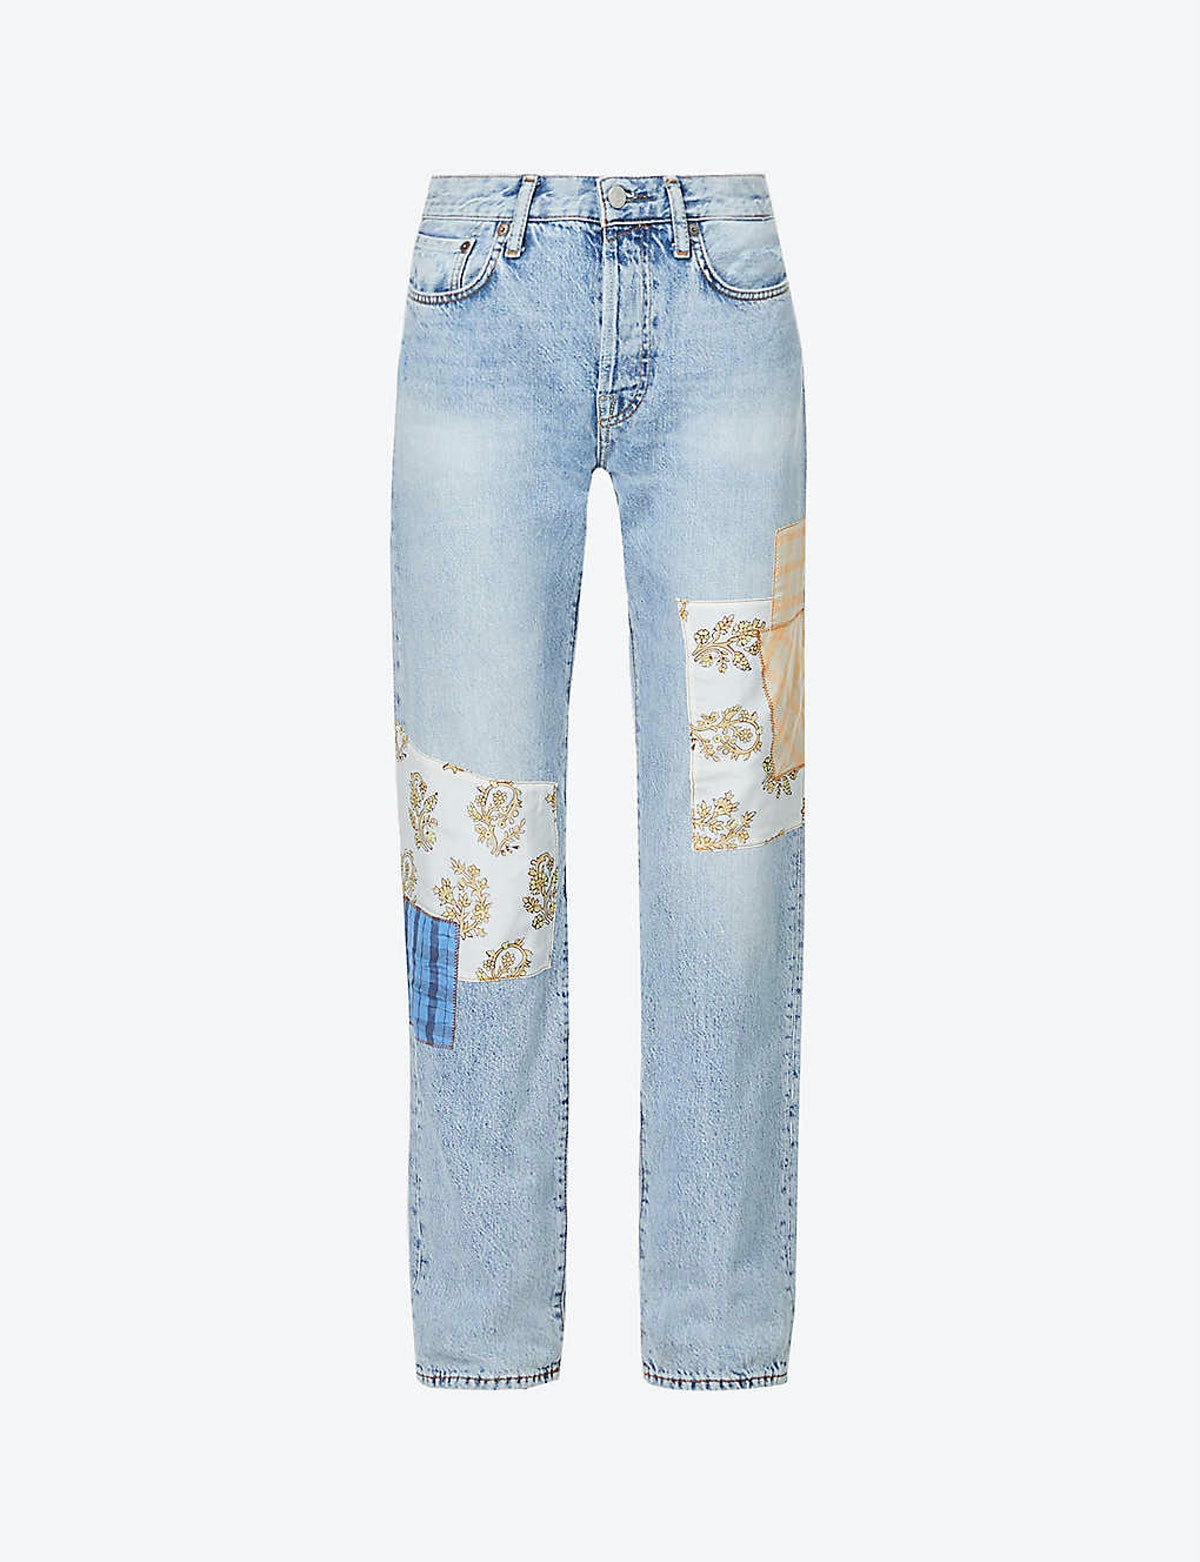 Pari high-rise regular-fit straight upcycled-denim jeans from Acne Studios, available via Selfridges...